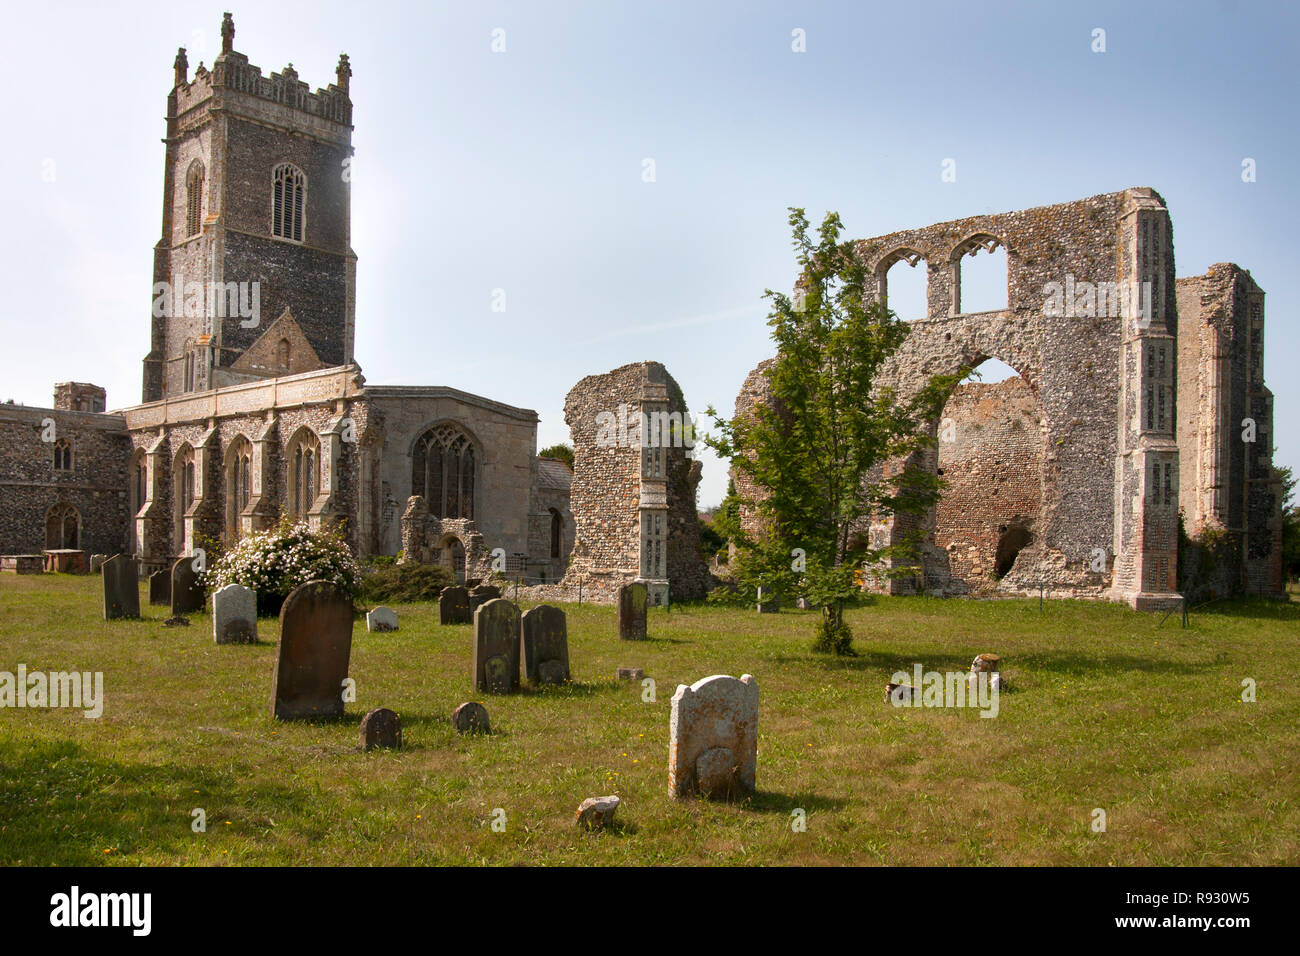 St Andrews Church and ruin, Walberswick, Southwold, Suffolk,East Anglia, England - Stock Image